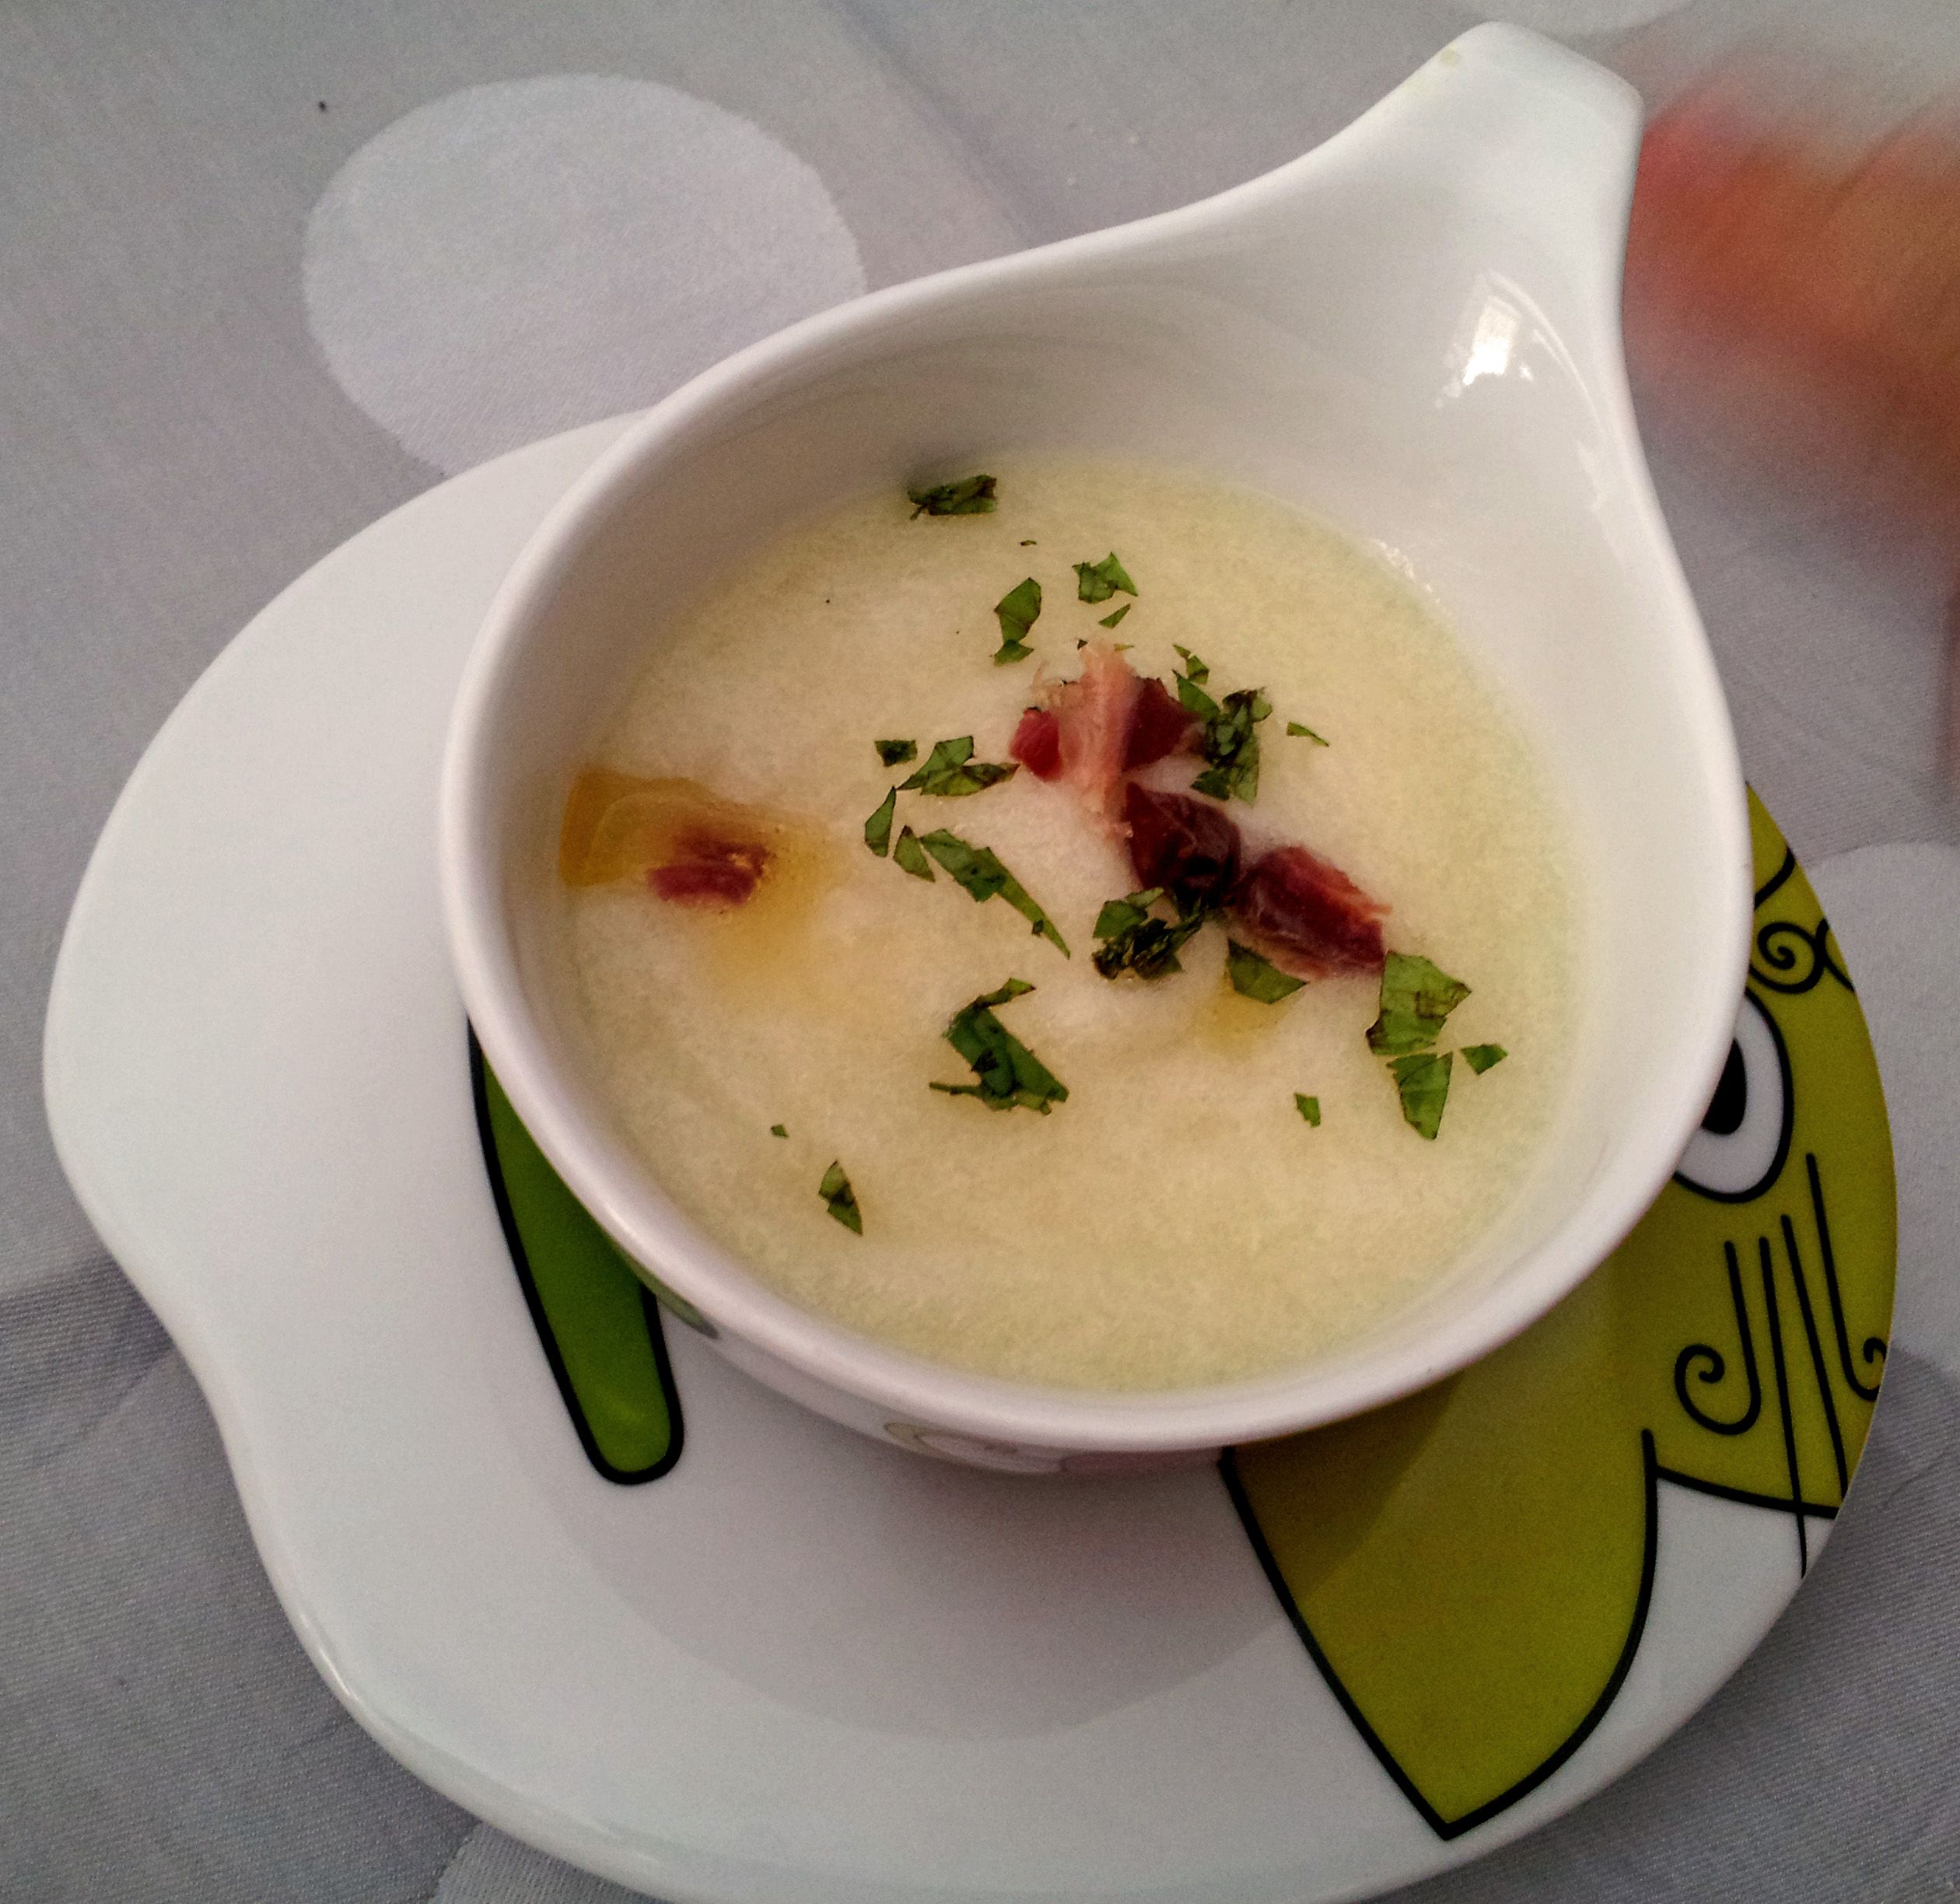 Perfect desert: melon soup. Special ingredients: ham, mint and olive oil. Cooked by Azhar Media